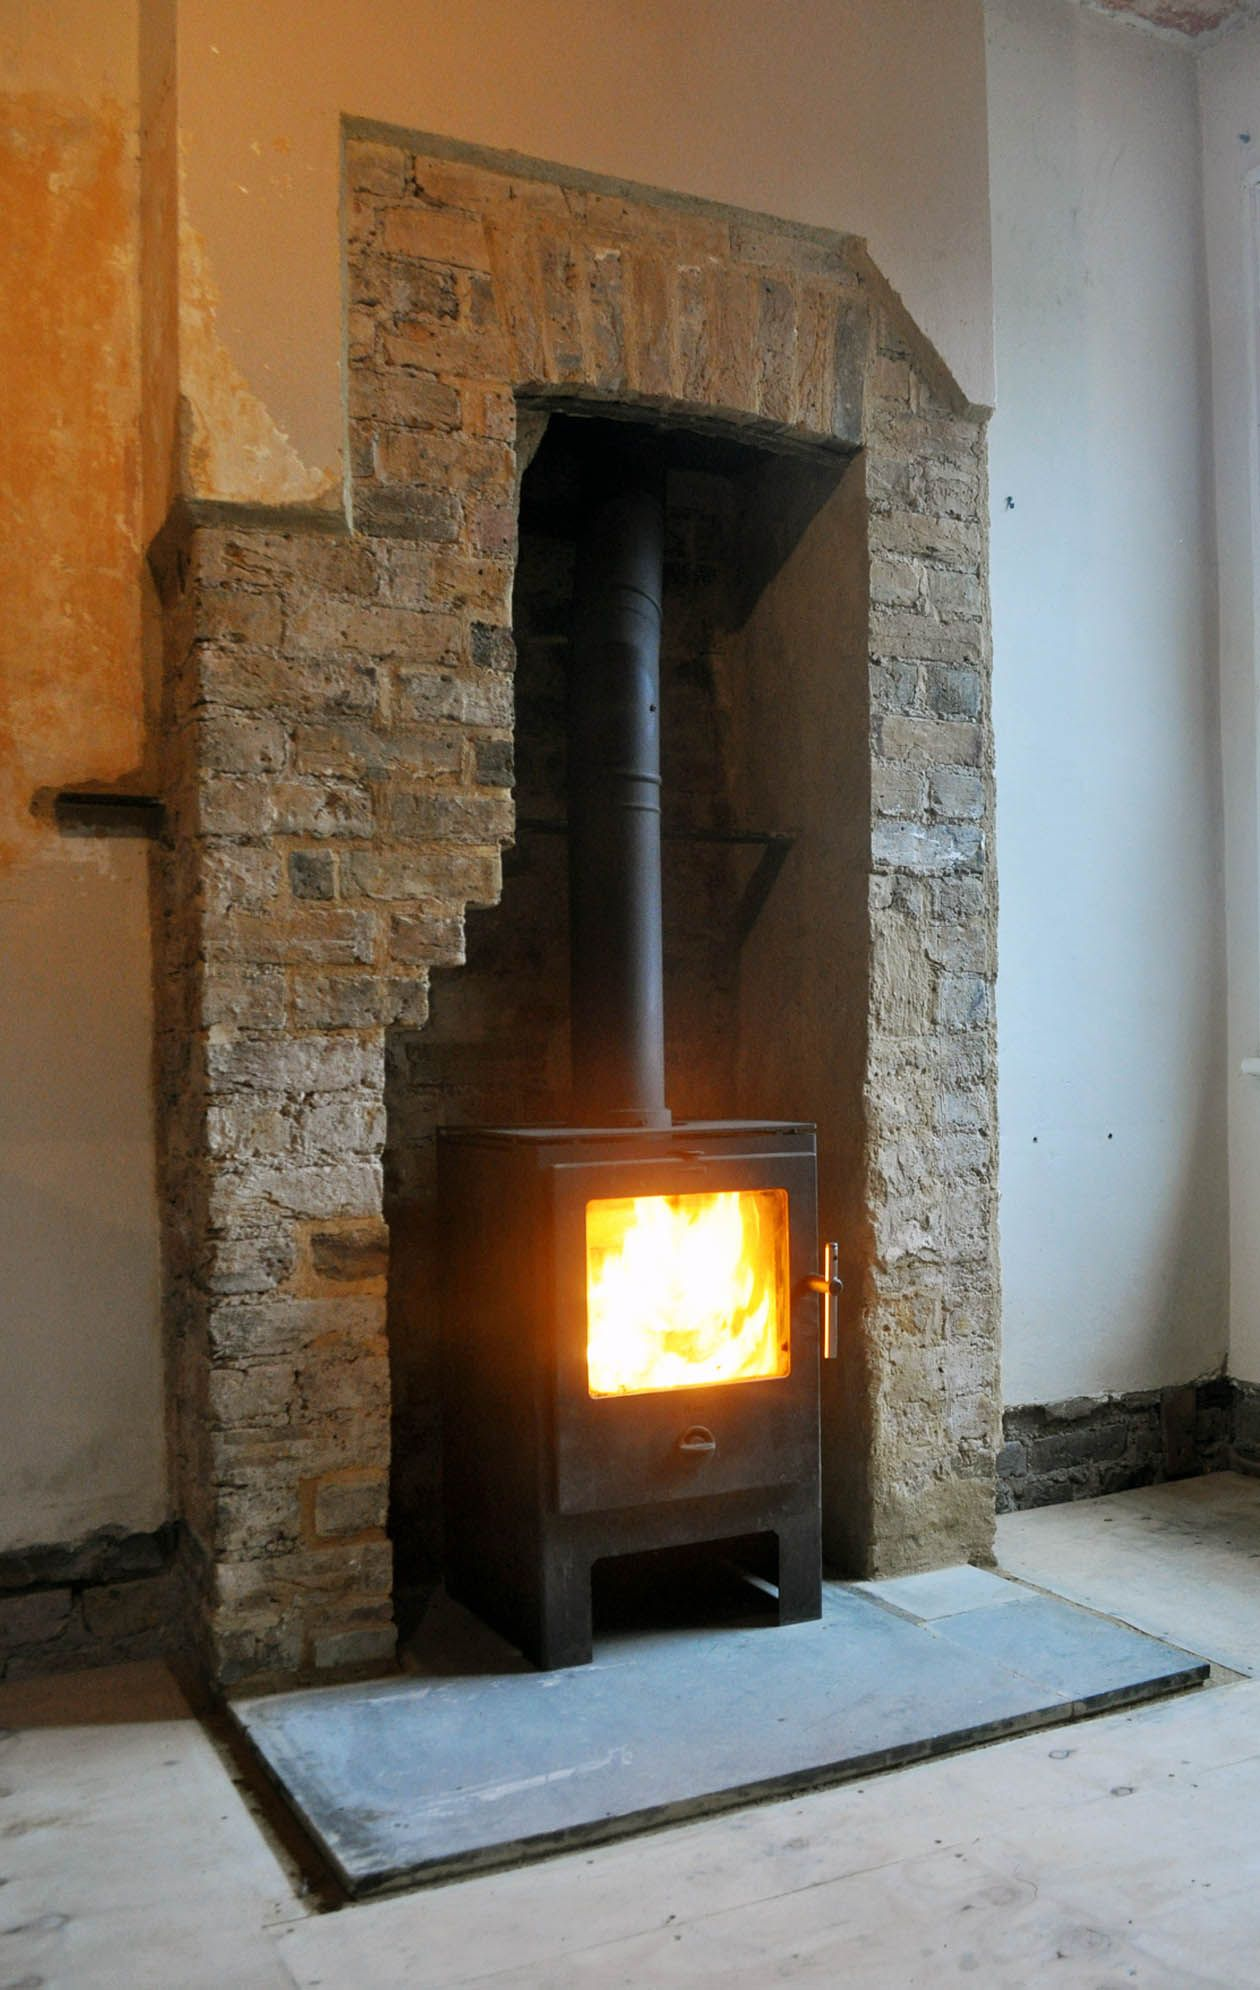 Heta Scanline, Painted Concrete Hearth